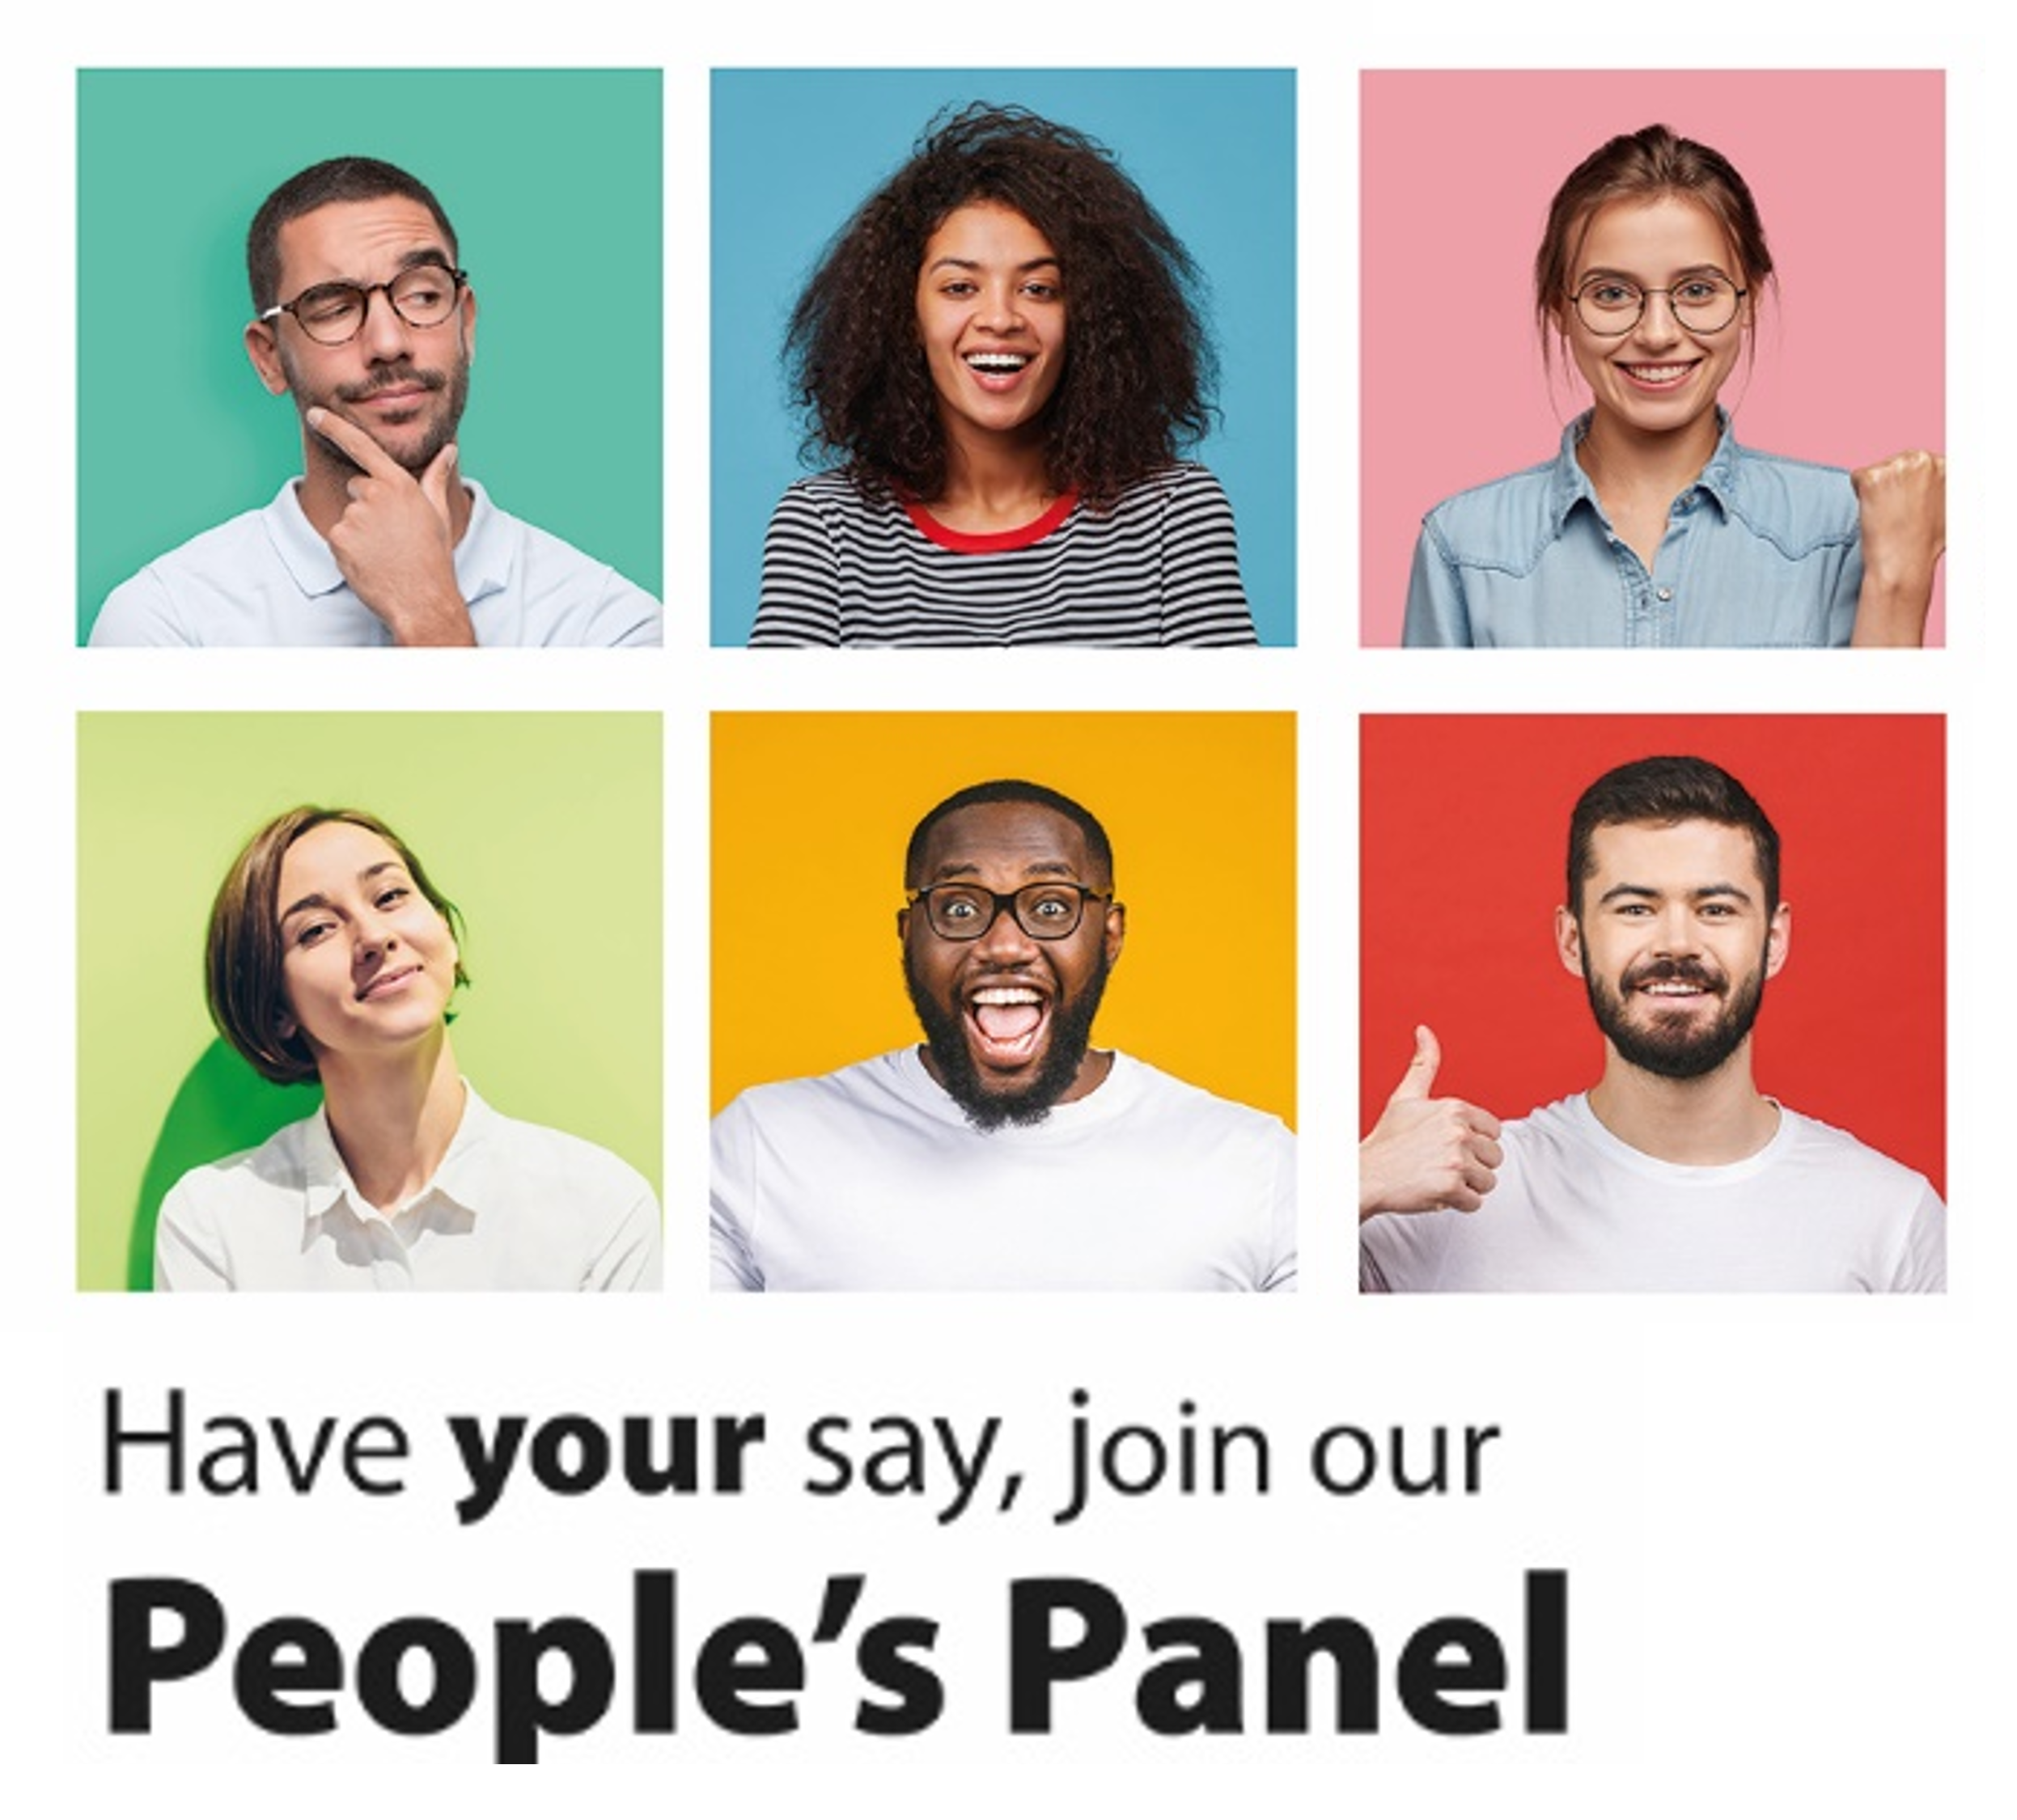 Decorative image: faces of 6 people in boxes with bright coloured background with the text Have your say, Join our People's panel